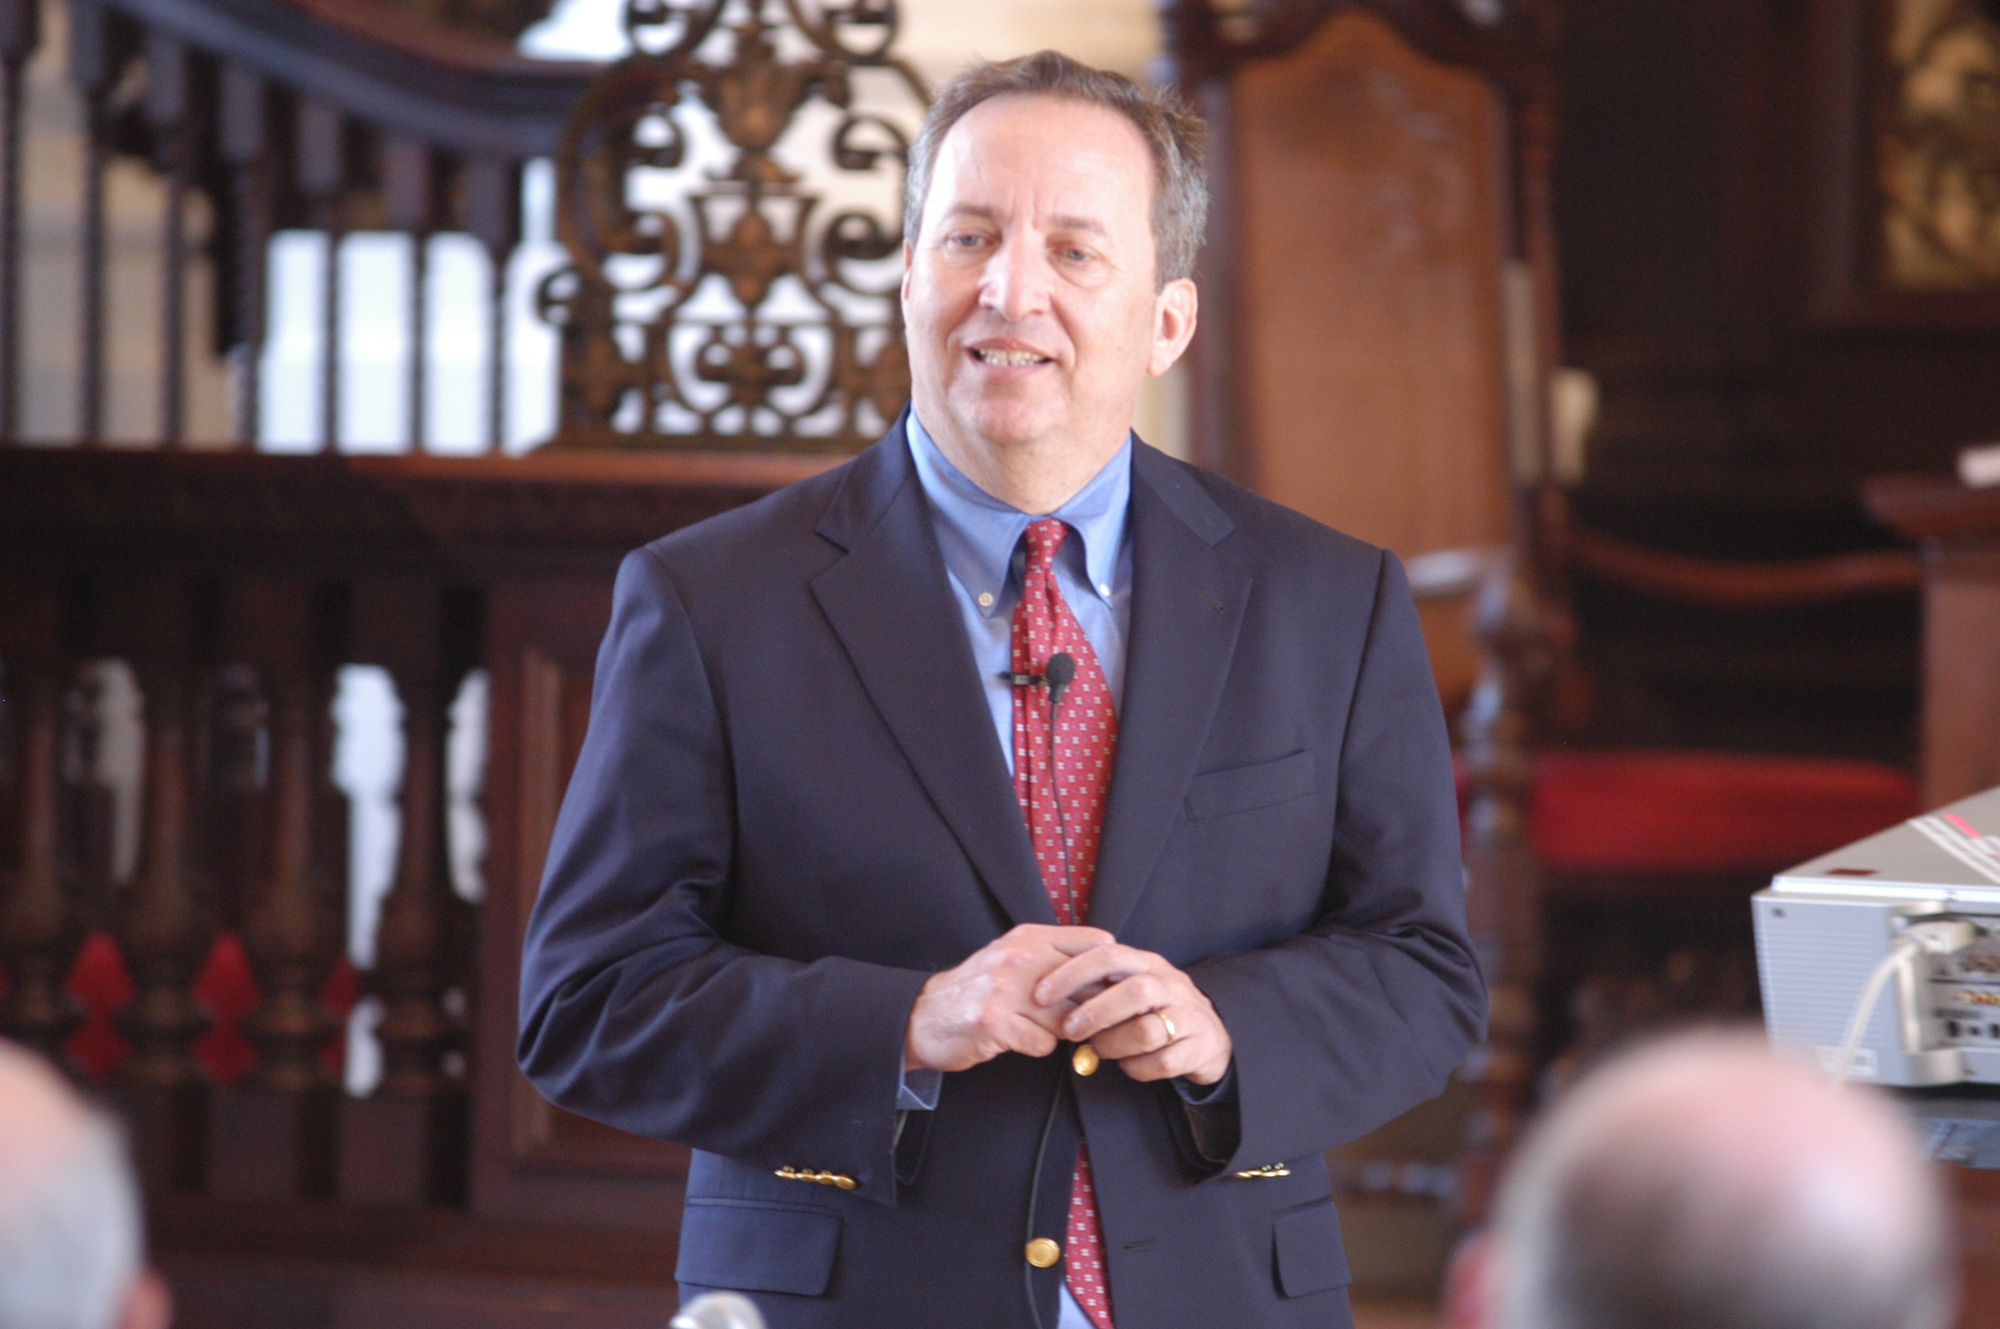 Former University President Larry Summers, pictured in a Crimson file photo, has withdrawn his name from consideration for Federal Reserve Chair.